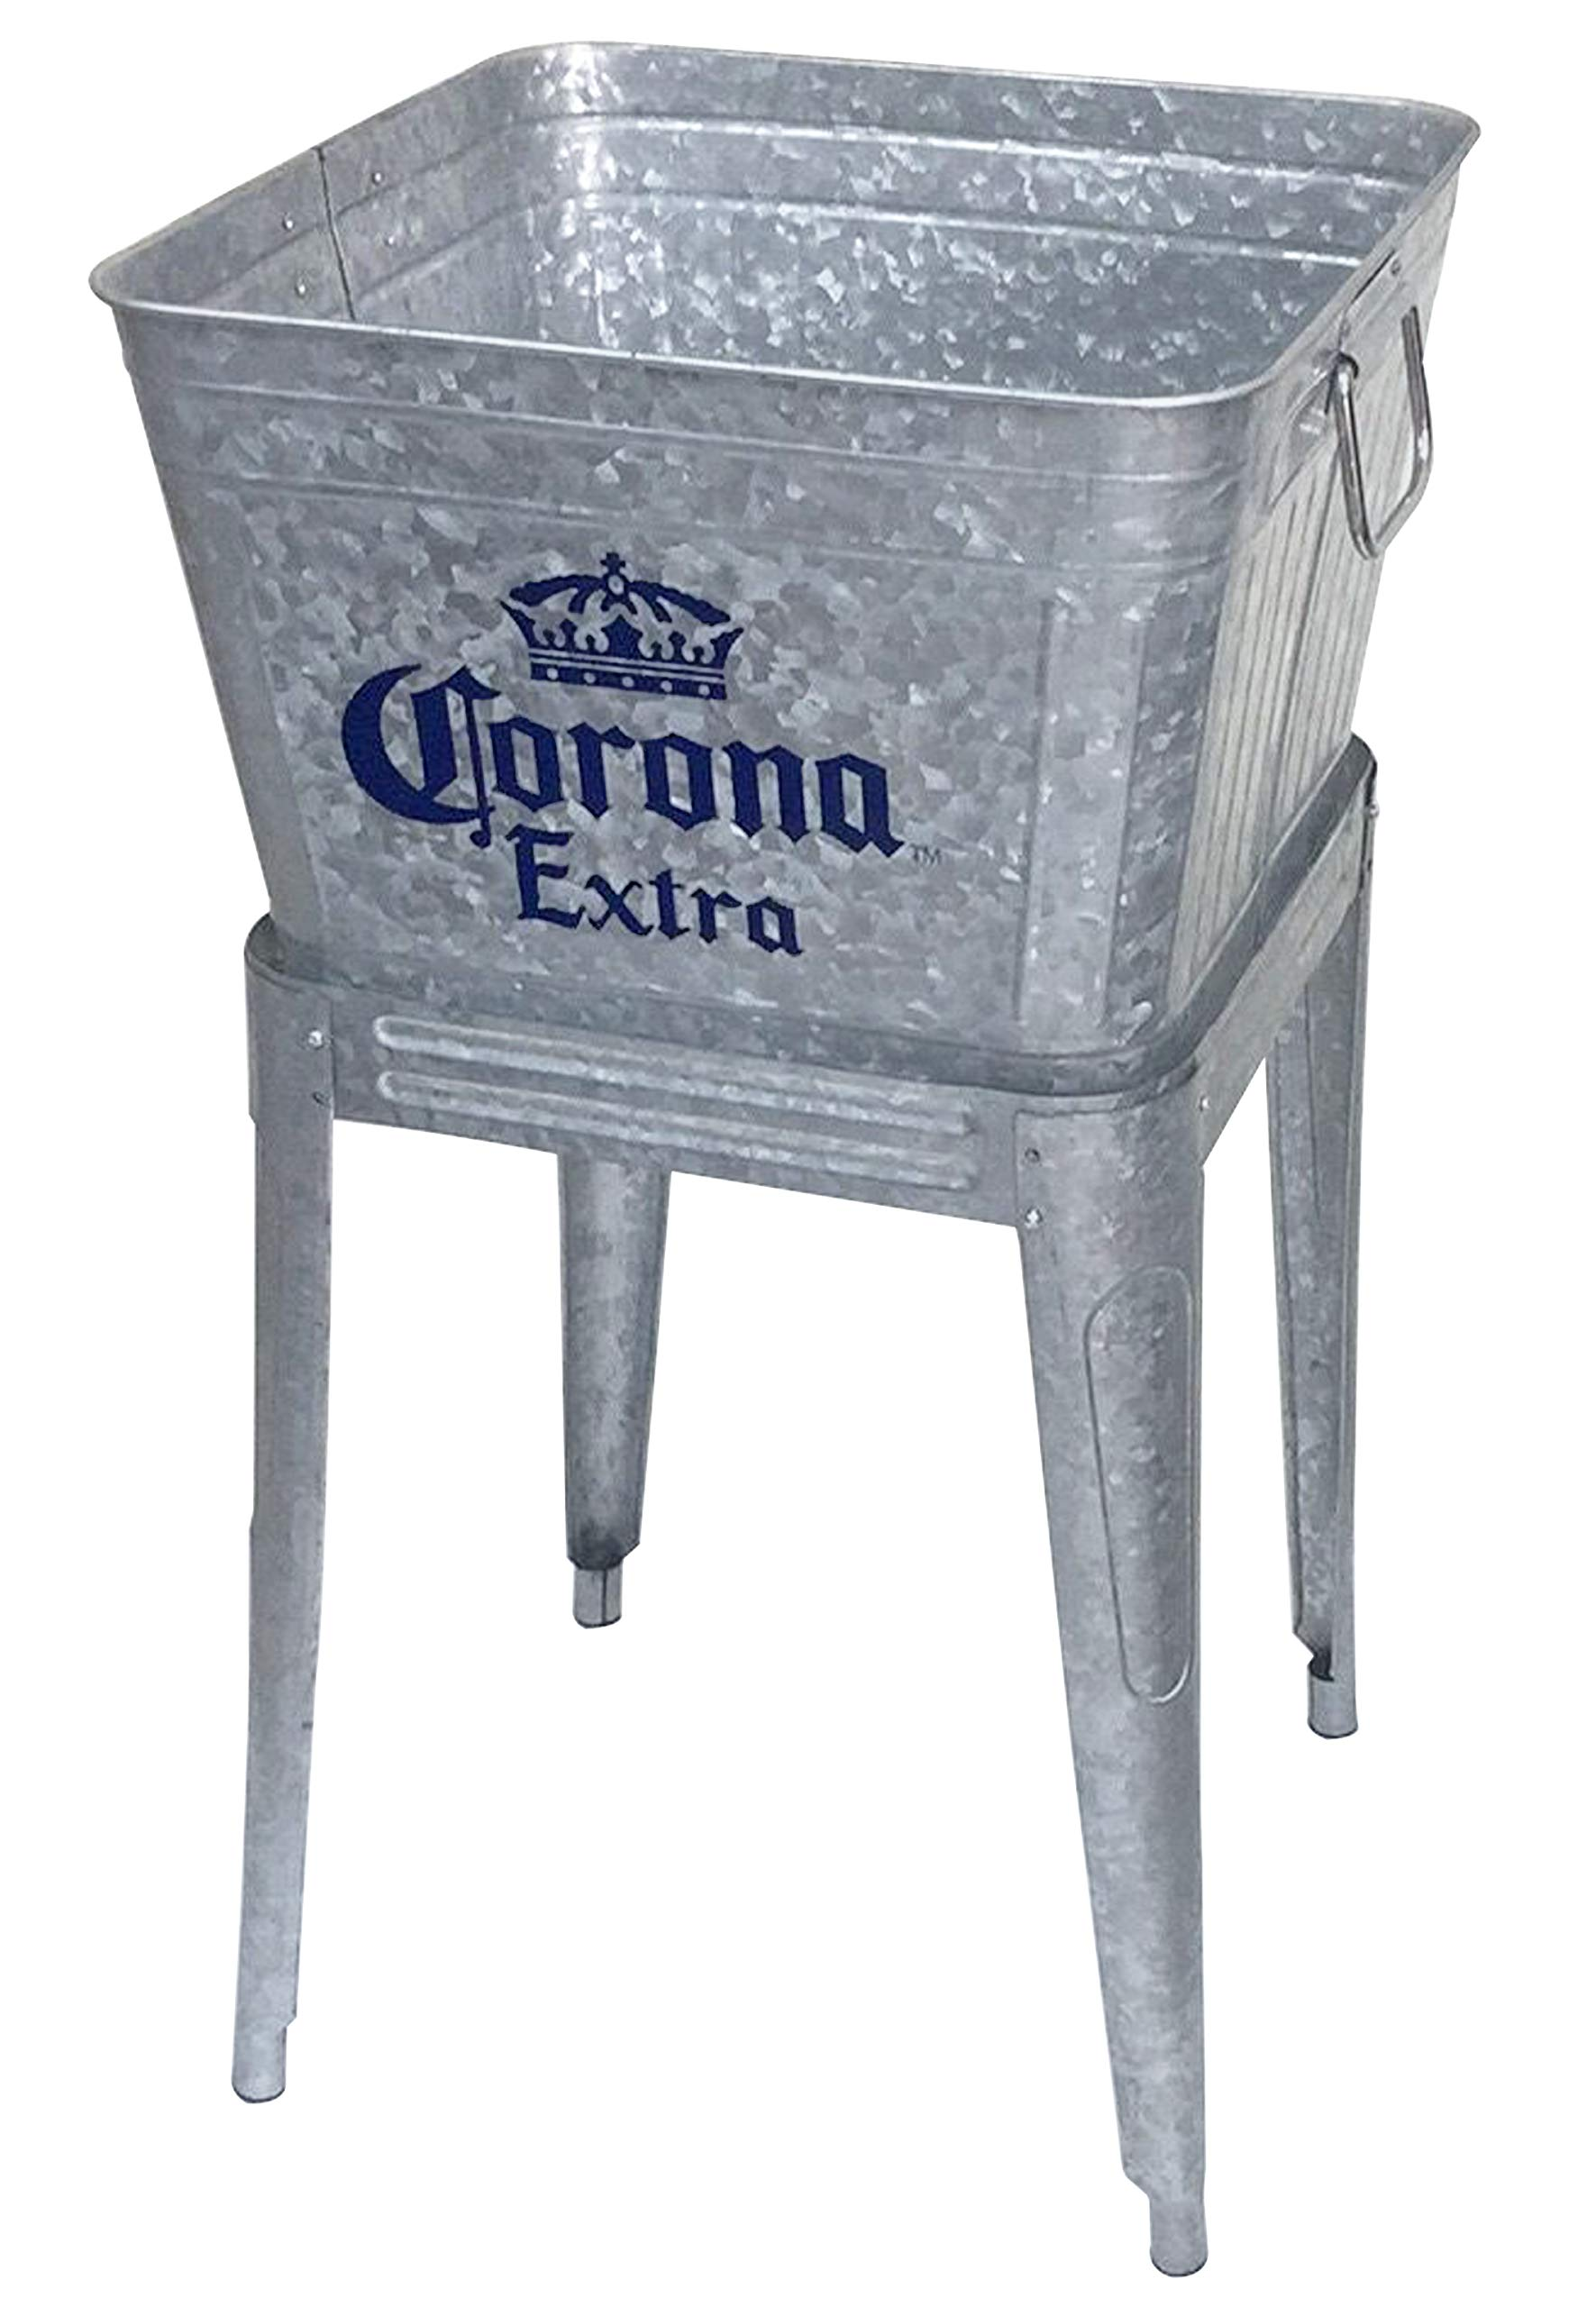 Leigh Country MC 47940 Galvanized Steel 42 Qt. Corona Extra Tub with Stand, Silver by Leigh Country